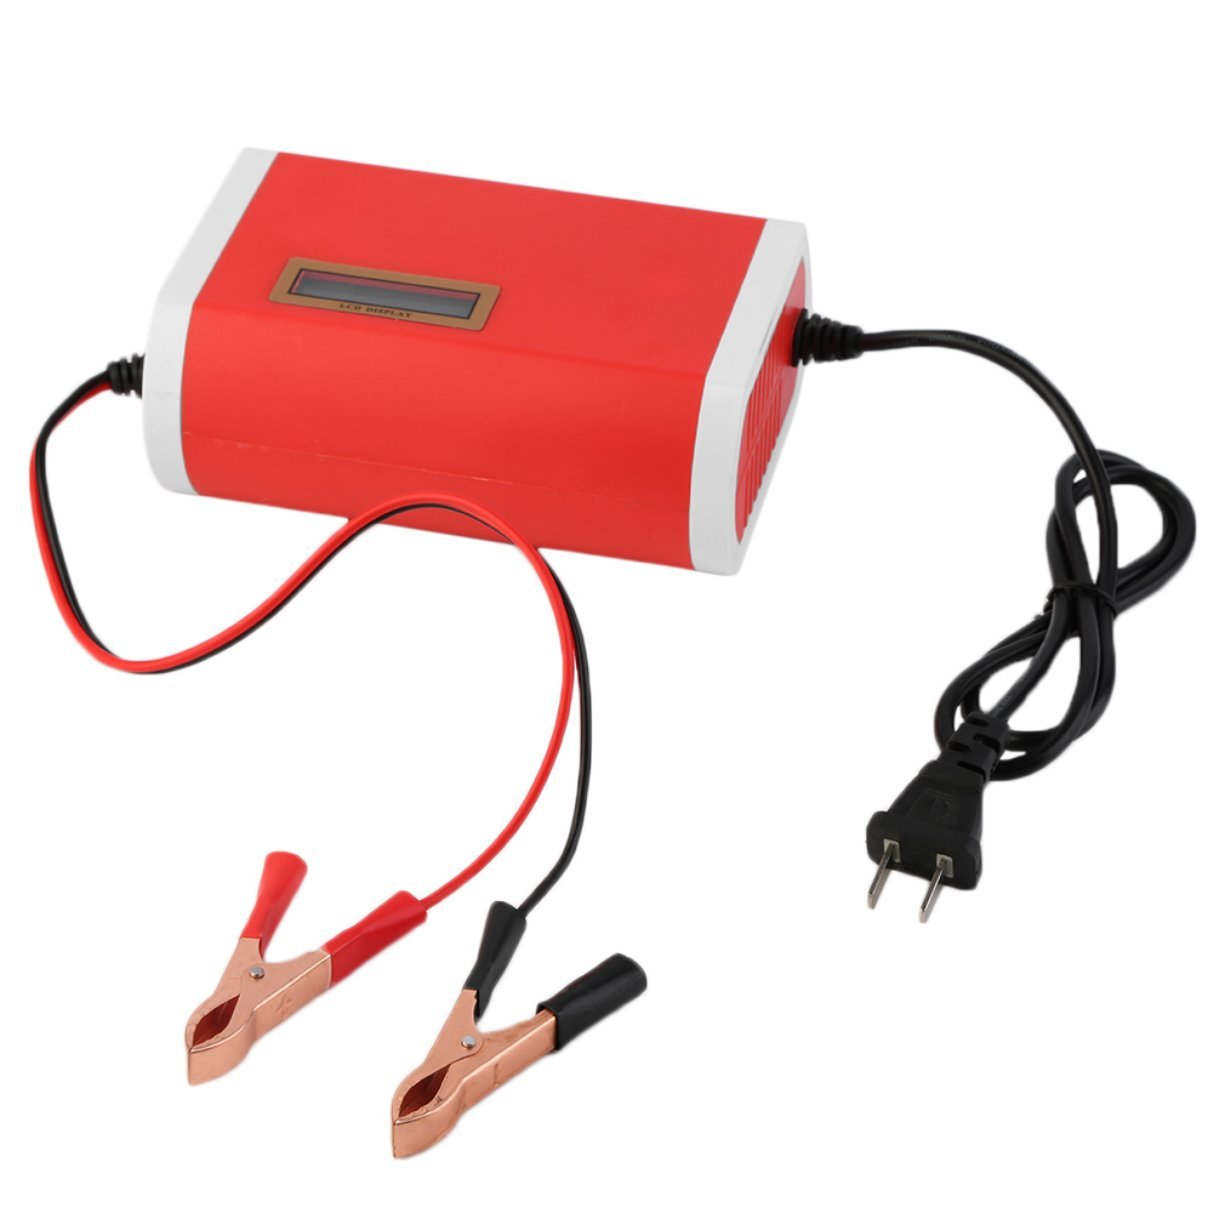 Detectoy Compact Structure Light Weight Intelligent 12V 6A Car Motorcycle Battery Charger for 12-Volt Sealed Lead-Acid US Plug